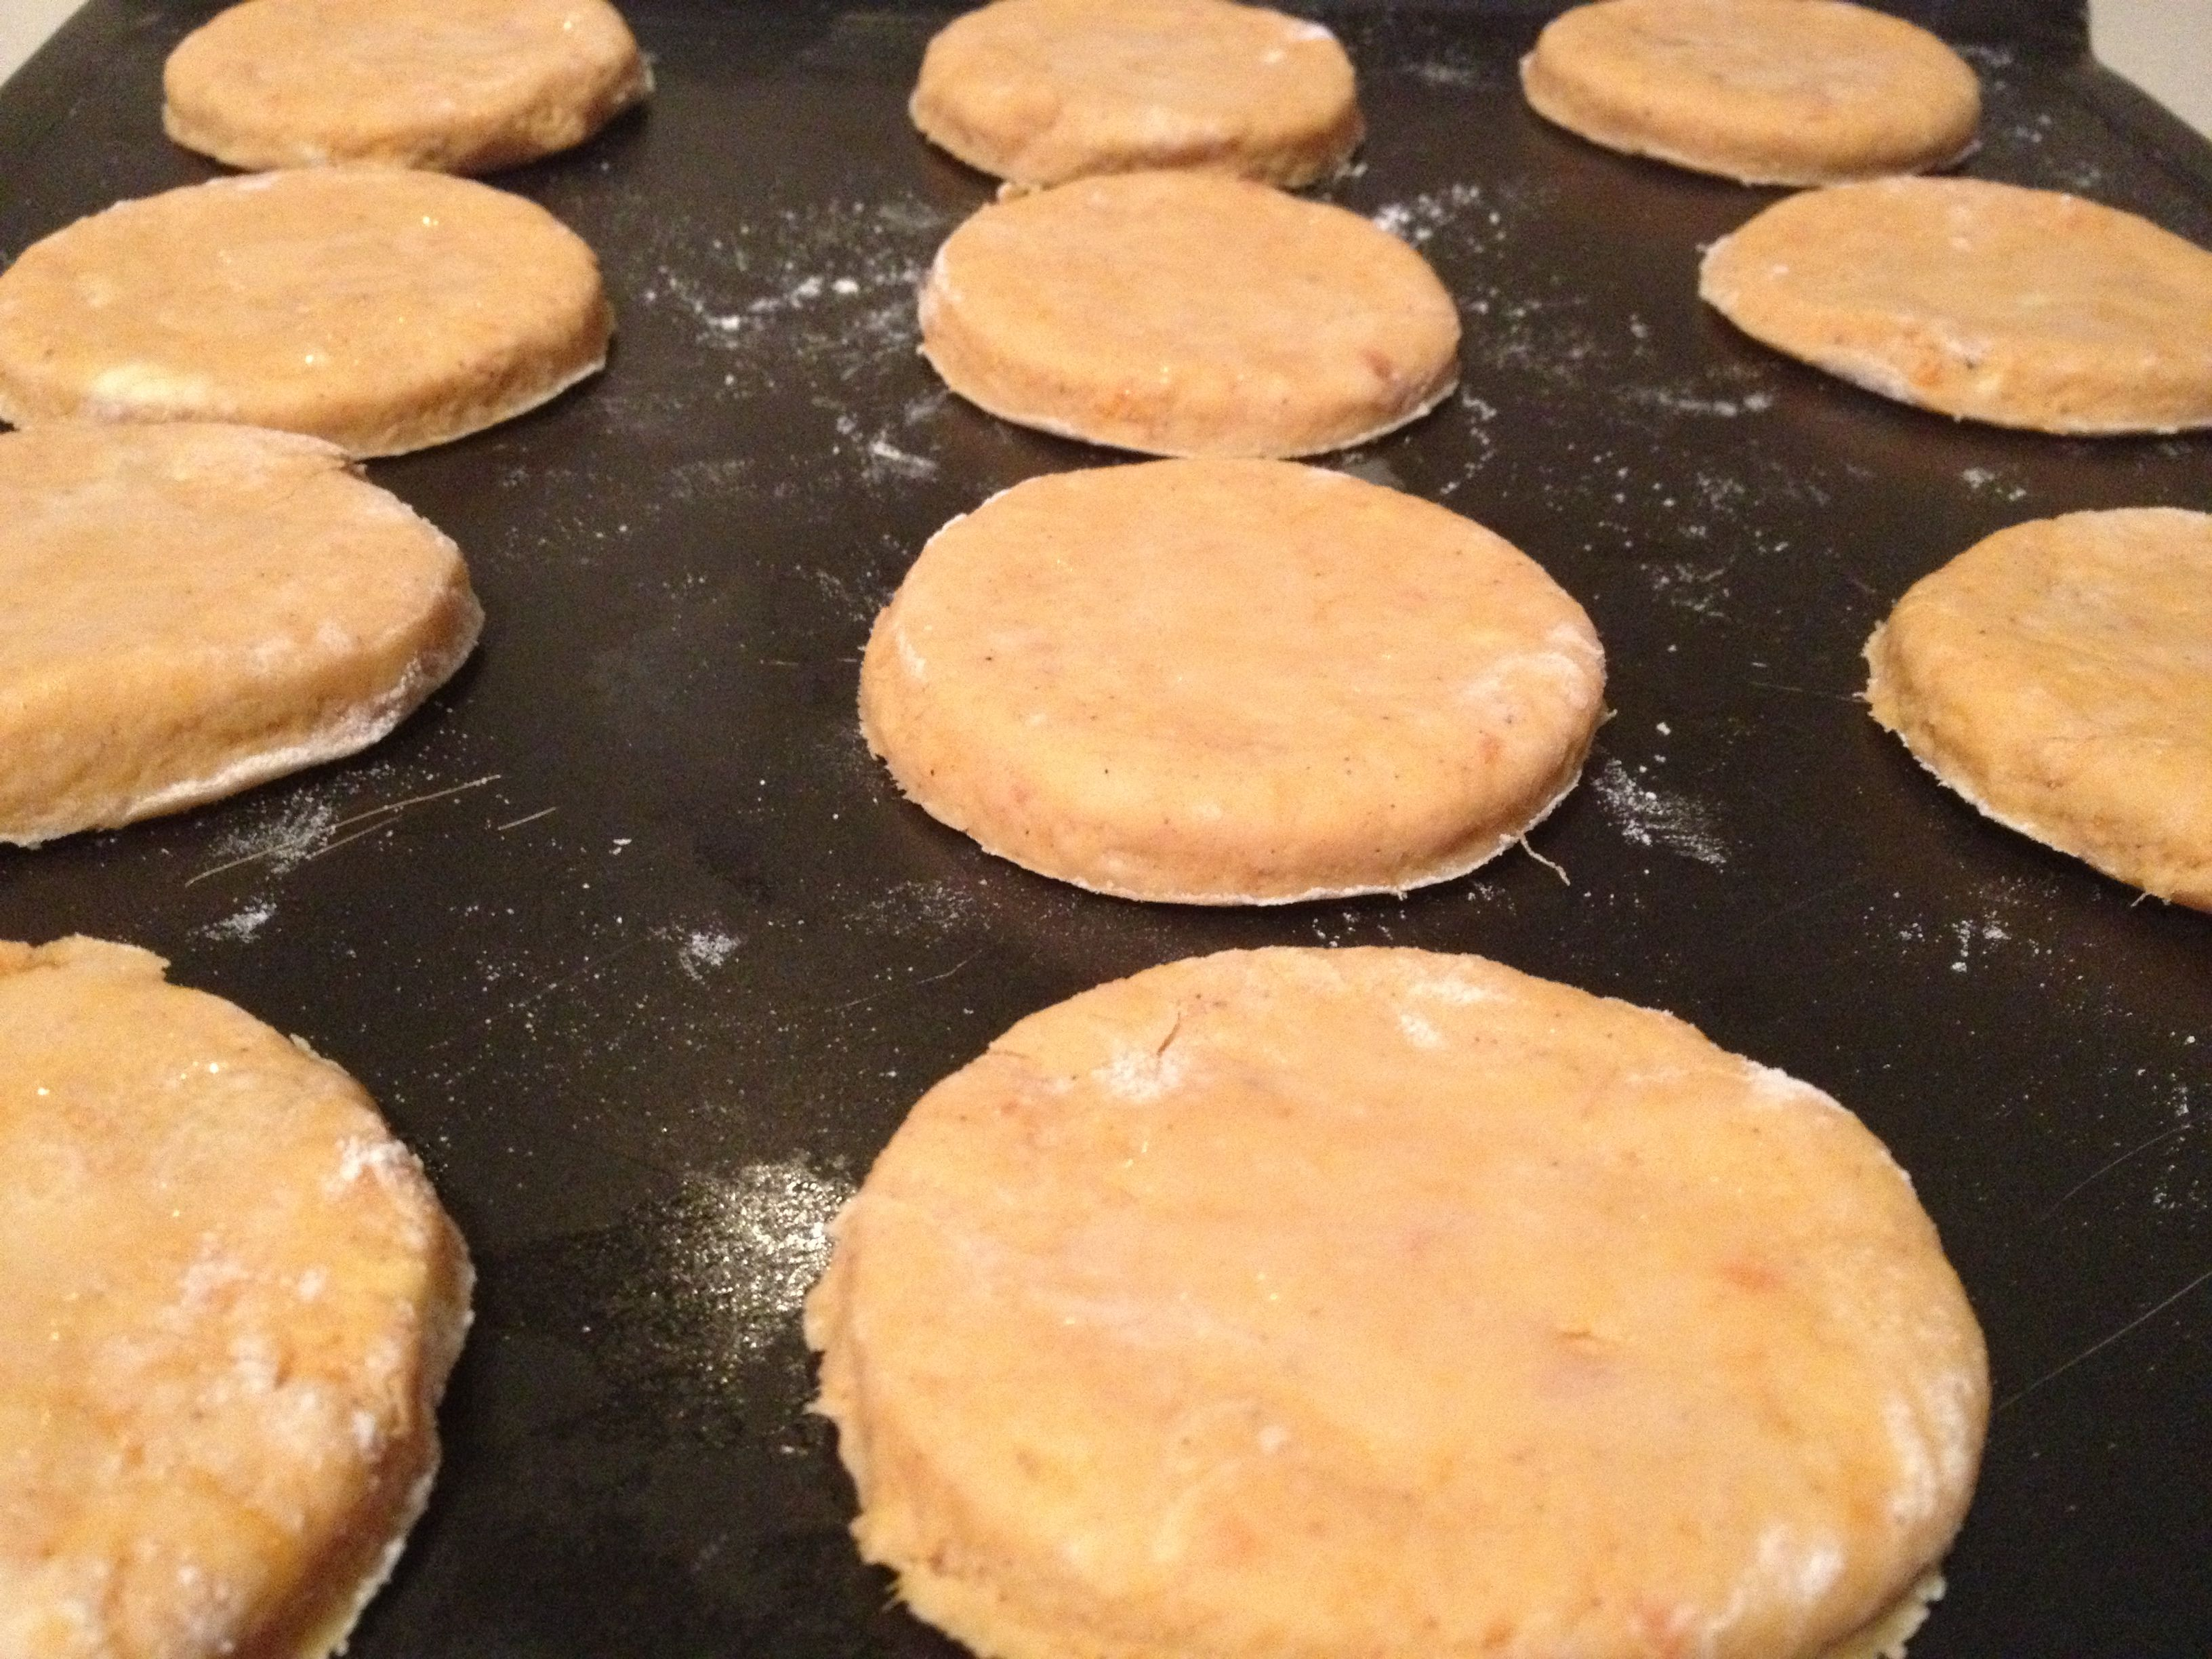 biscuits placed